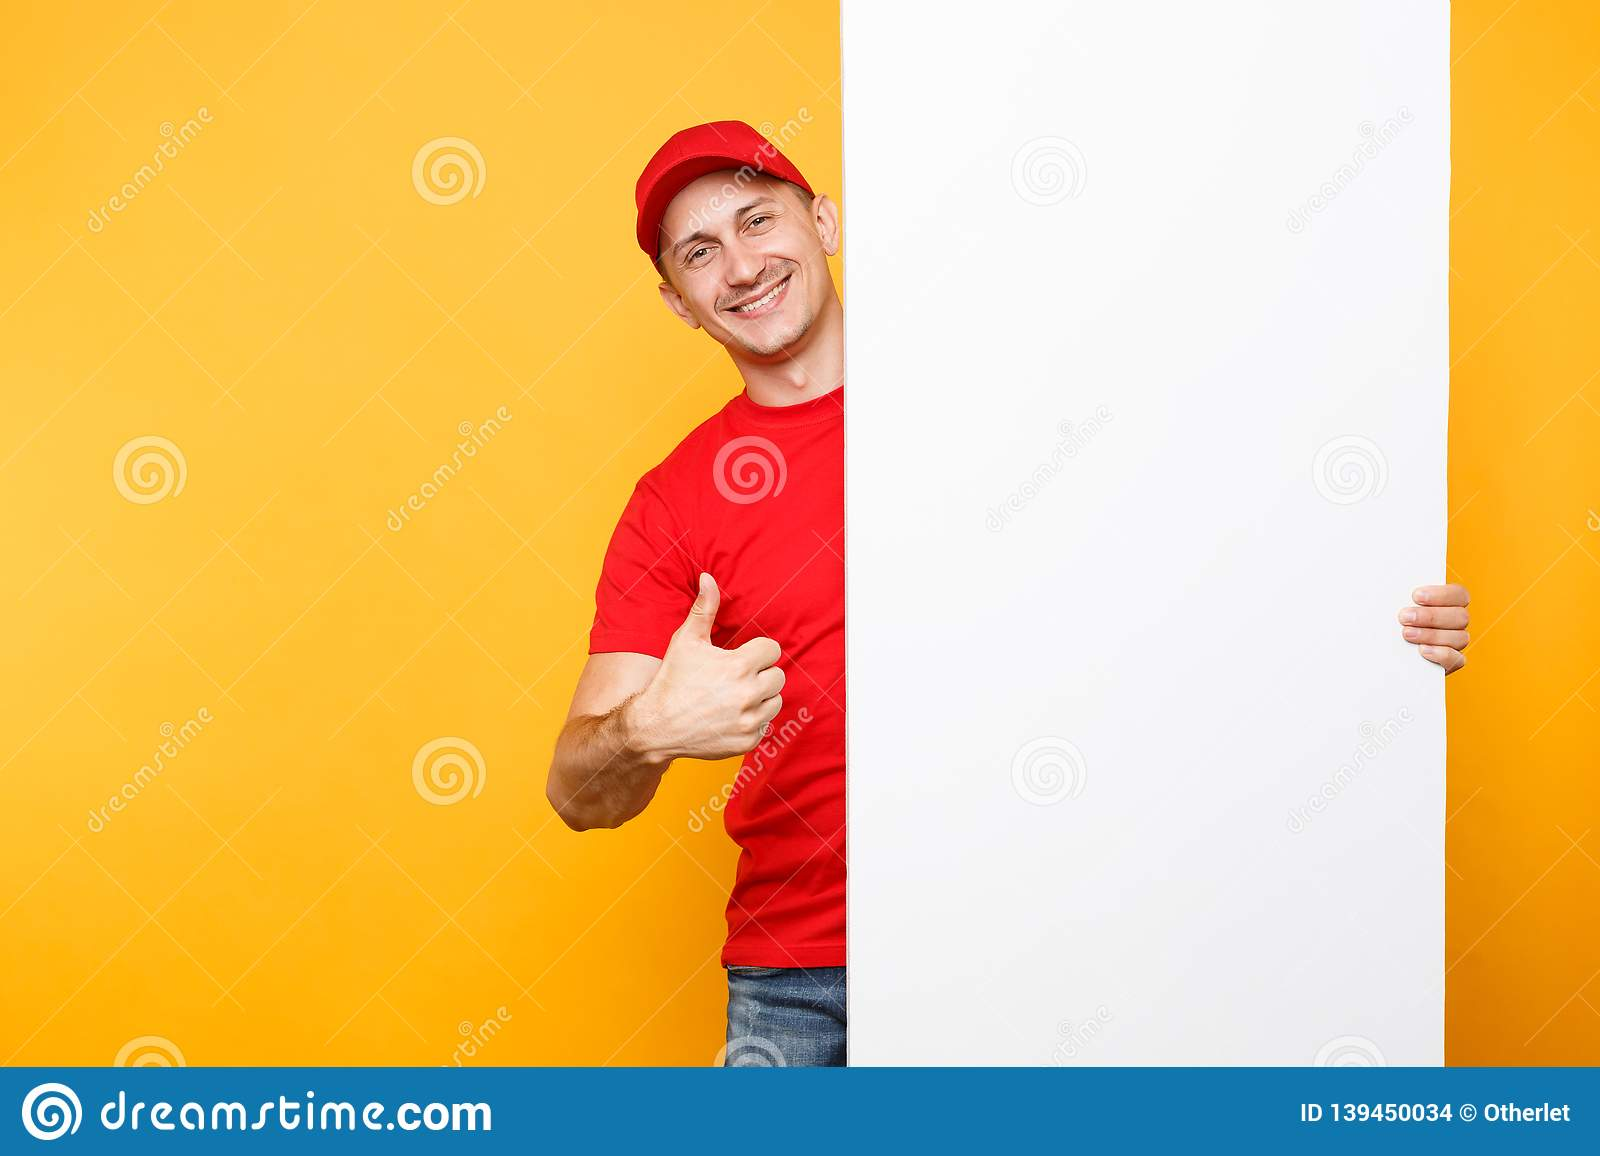 Delivery man in red uniform isolated on yellow orange background. Male employee courier in cap, t-shirt holding big